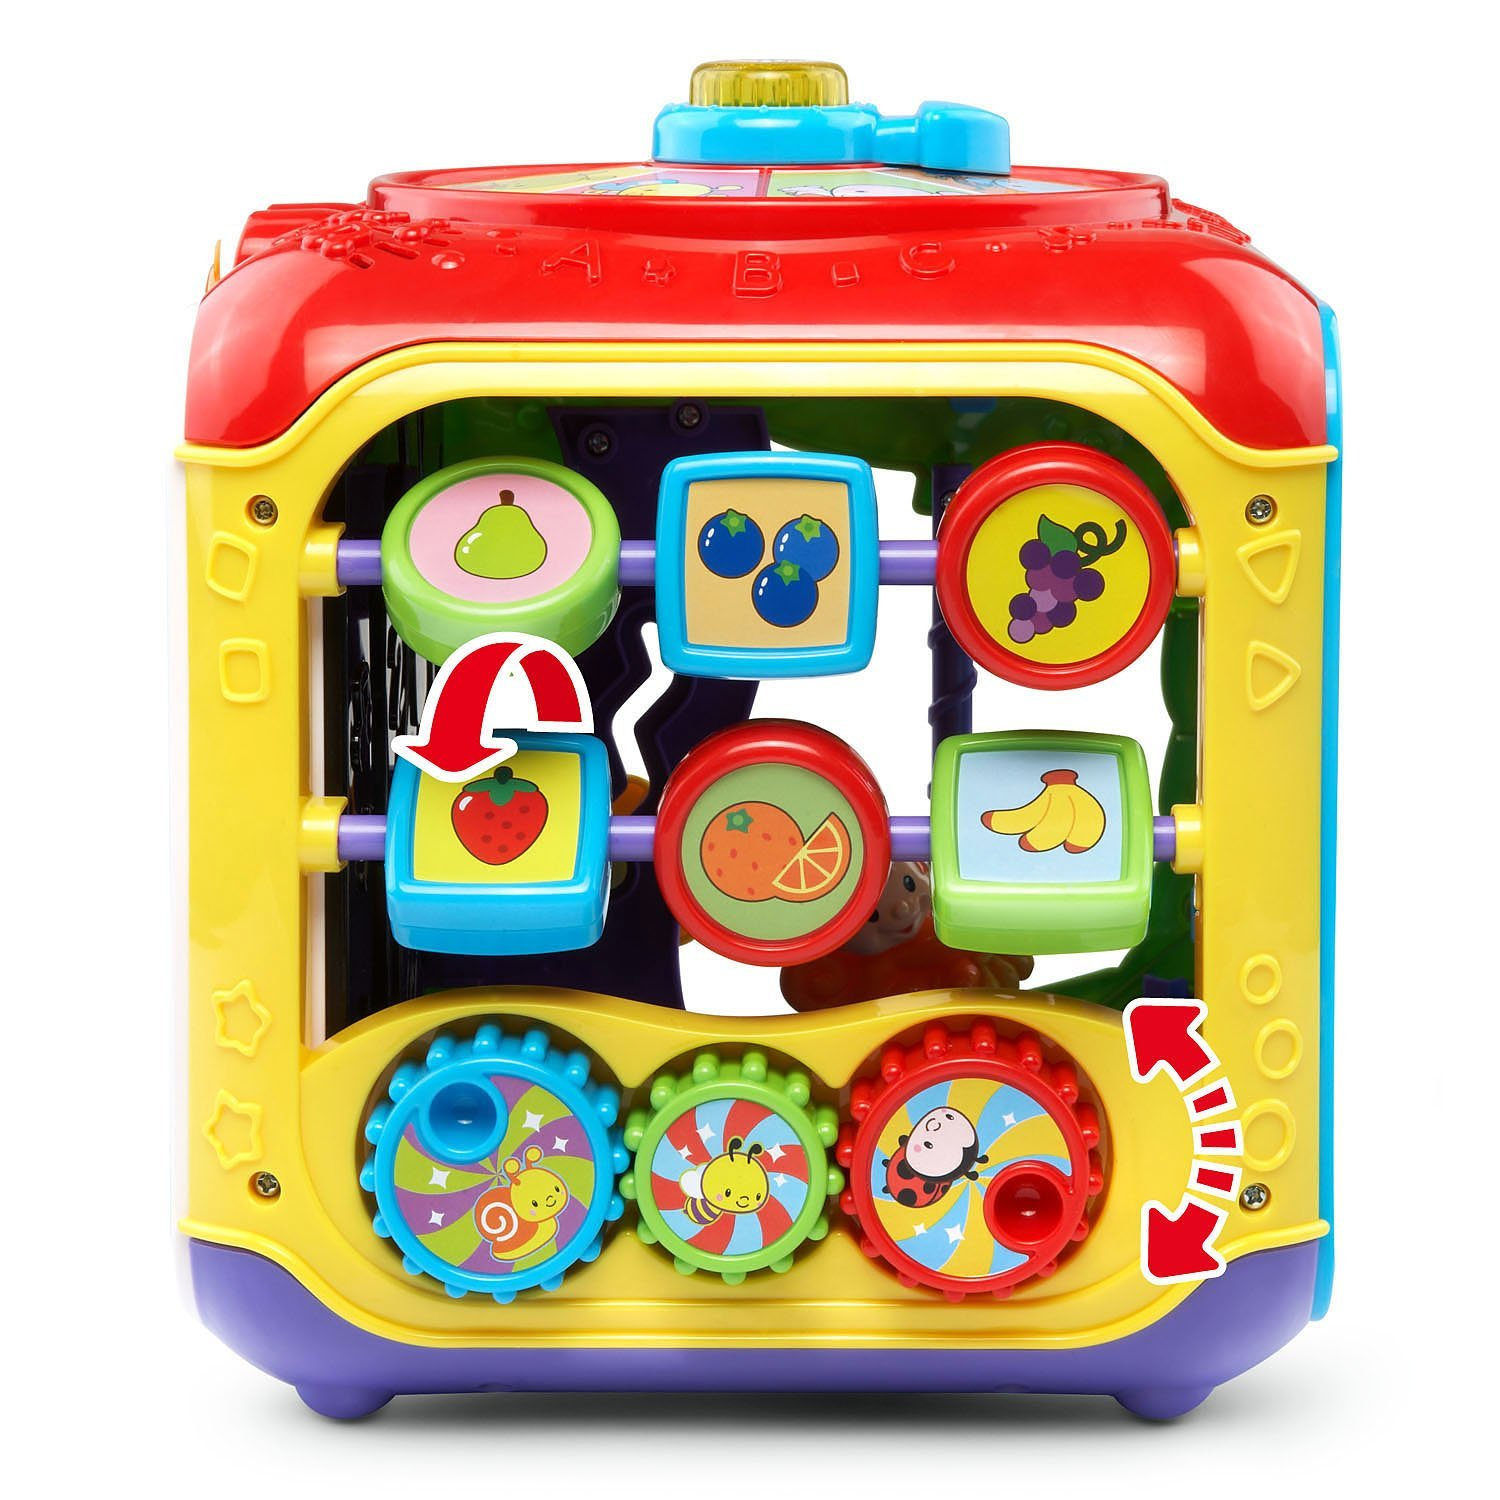 VTech Sort and Discover Activity Cube, Red by VTech (Image #3)